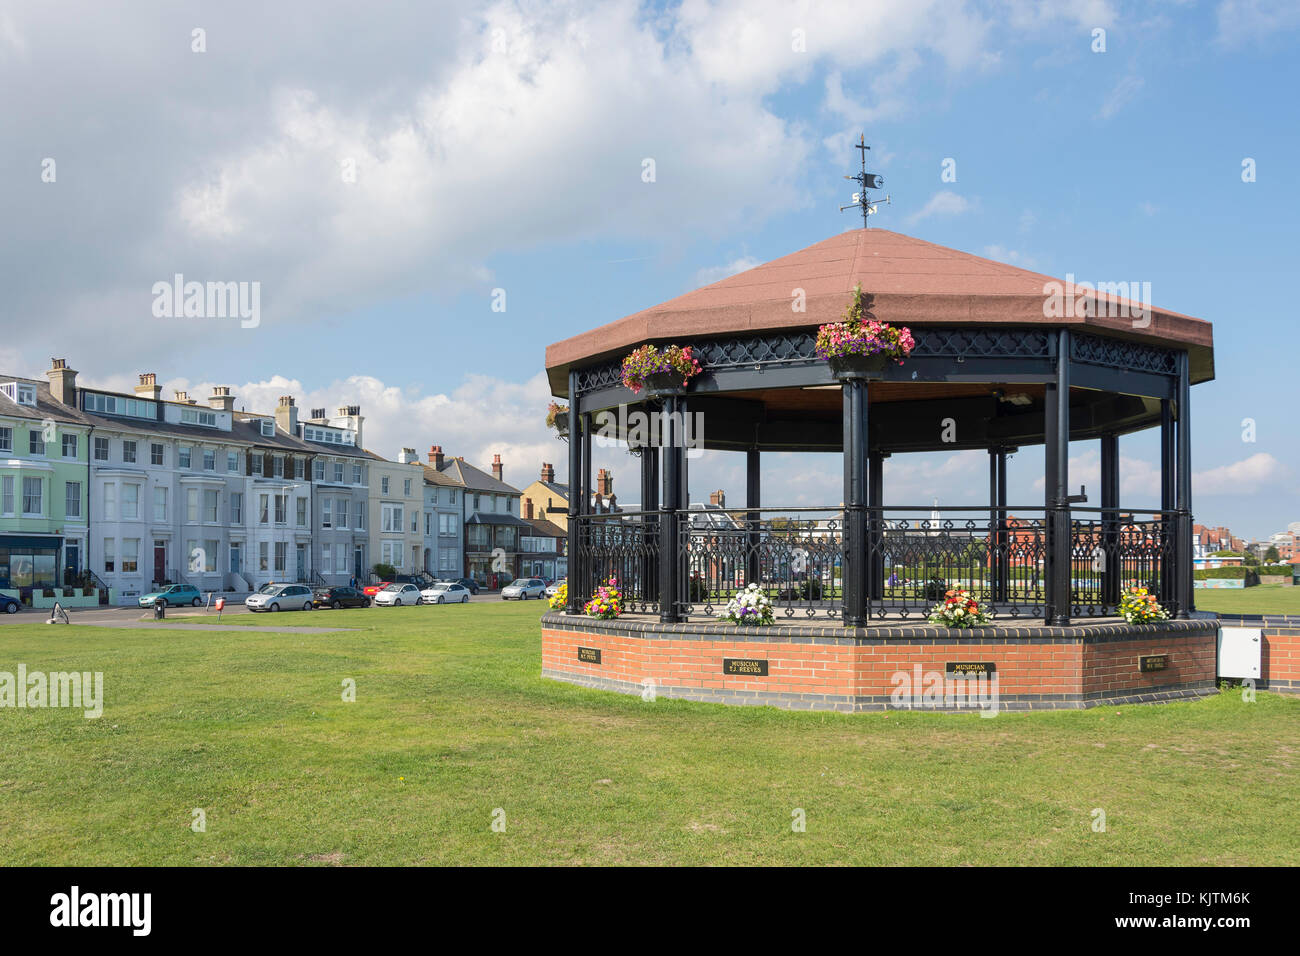 The Deal Memorial Bandstand, The Strand, Walmer, Deal, Kent, England, United Kingdom - Stock Image